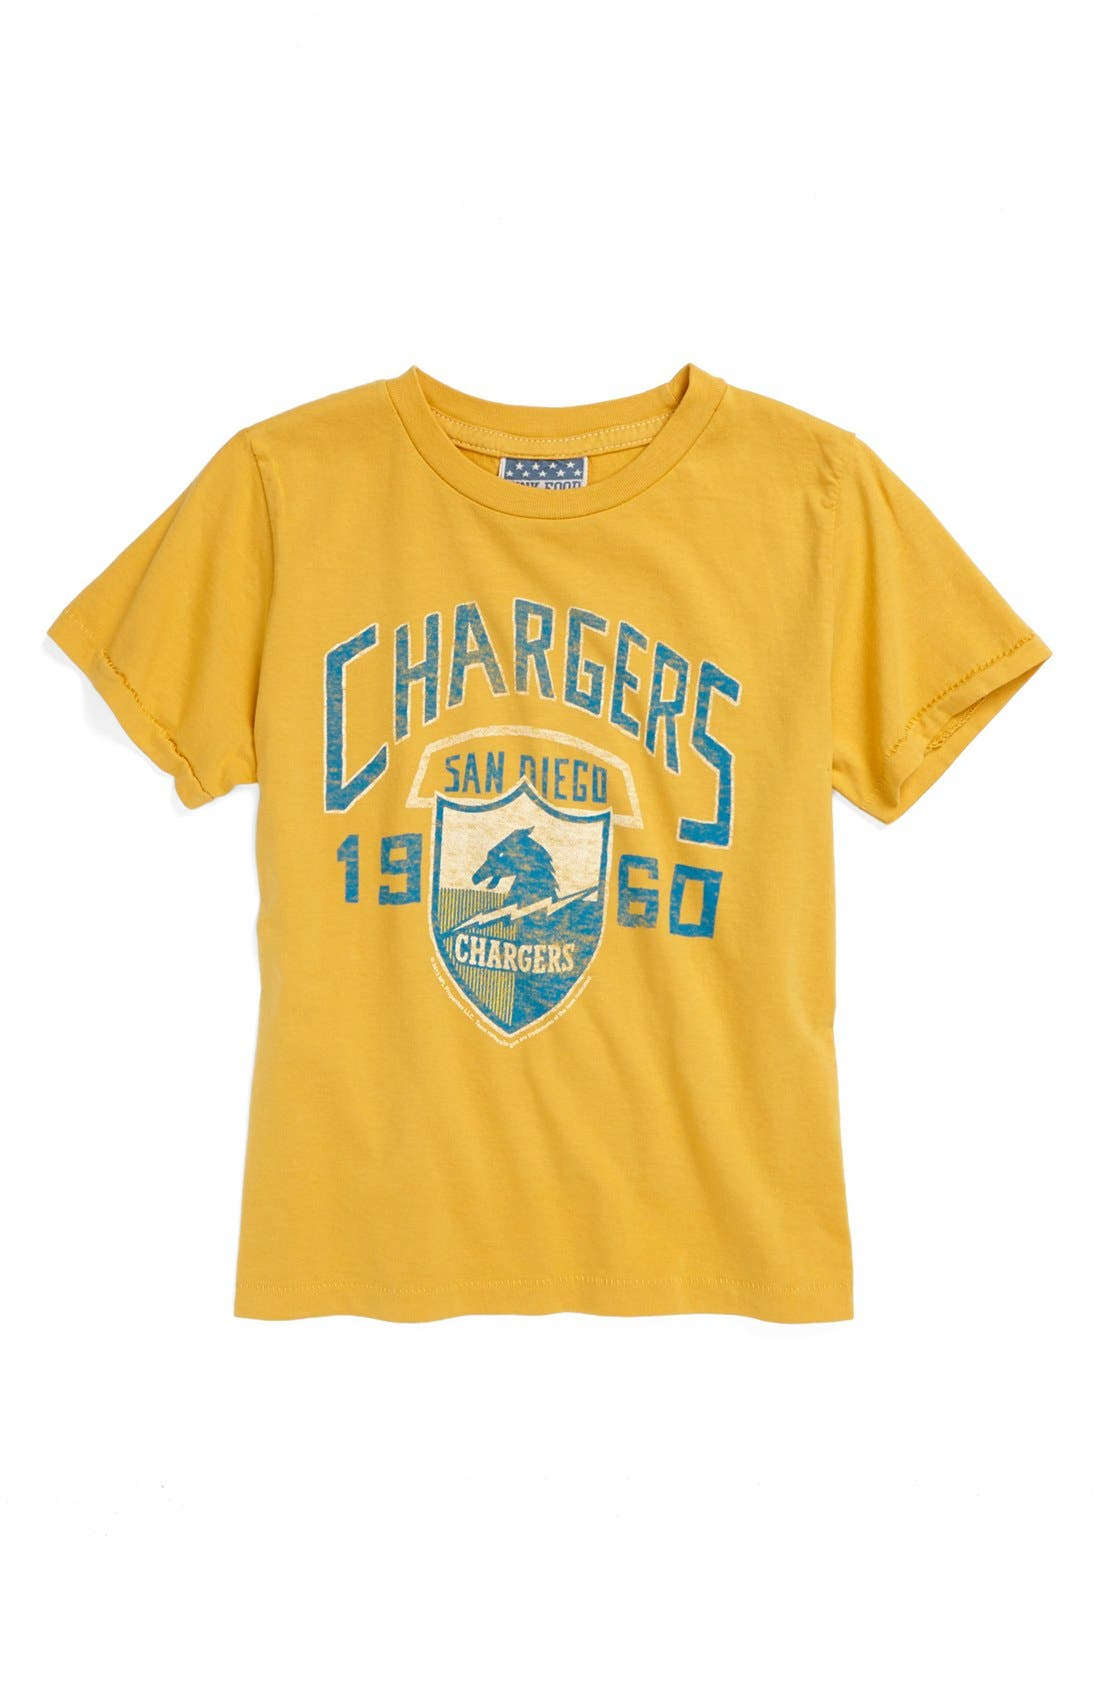 Alternate Image 1 Selected - Junk Food 'San Diego Chargers' T-Shirt (Toddler Boys)